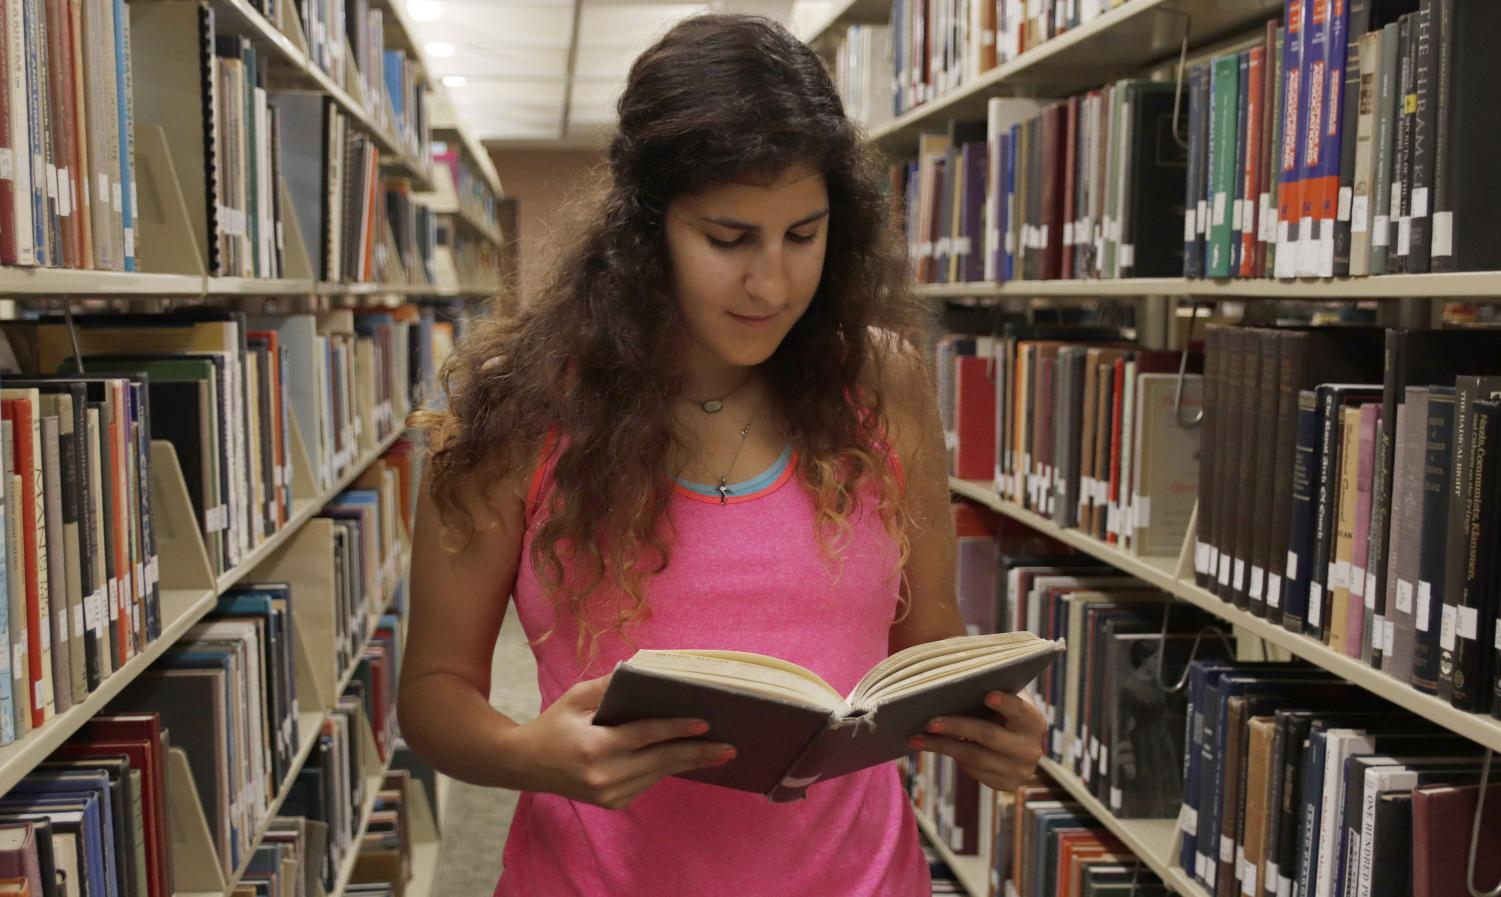 Nicole Zimmer, a senior biological sciences major, checks a book in the library. She has worked in the Sims Memorial Library for three years.